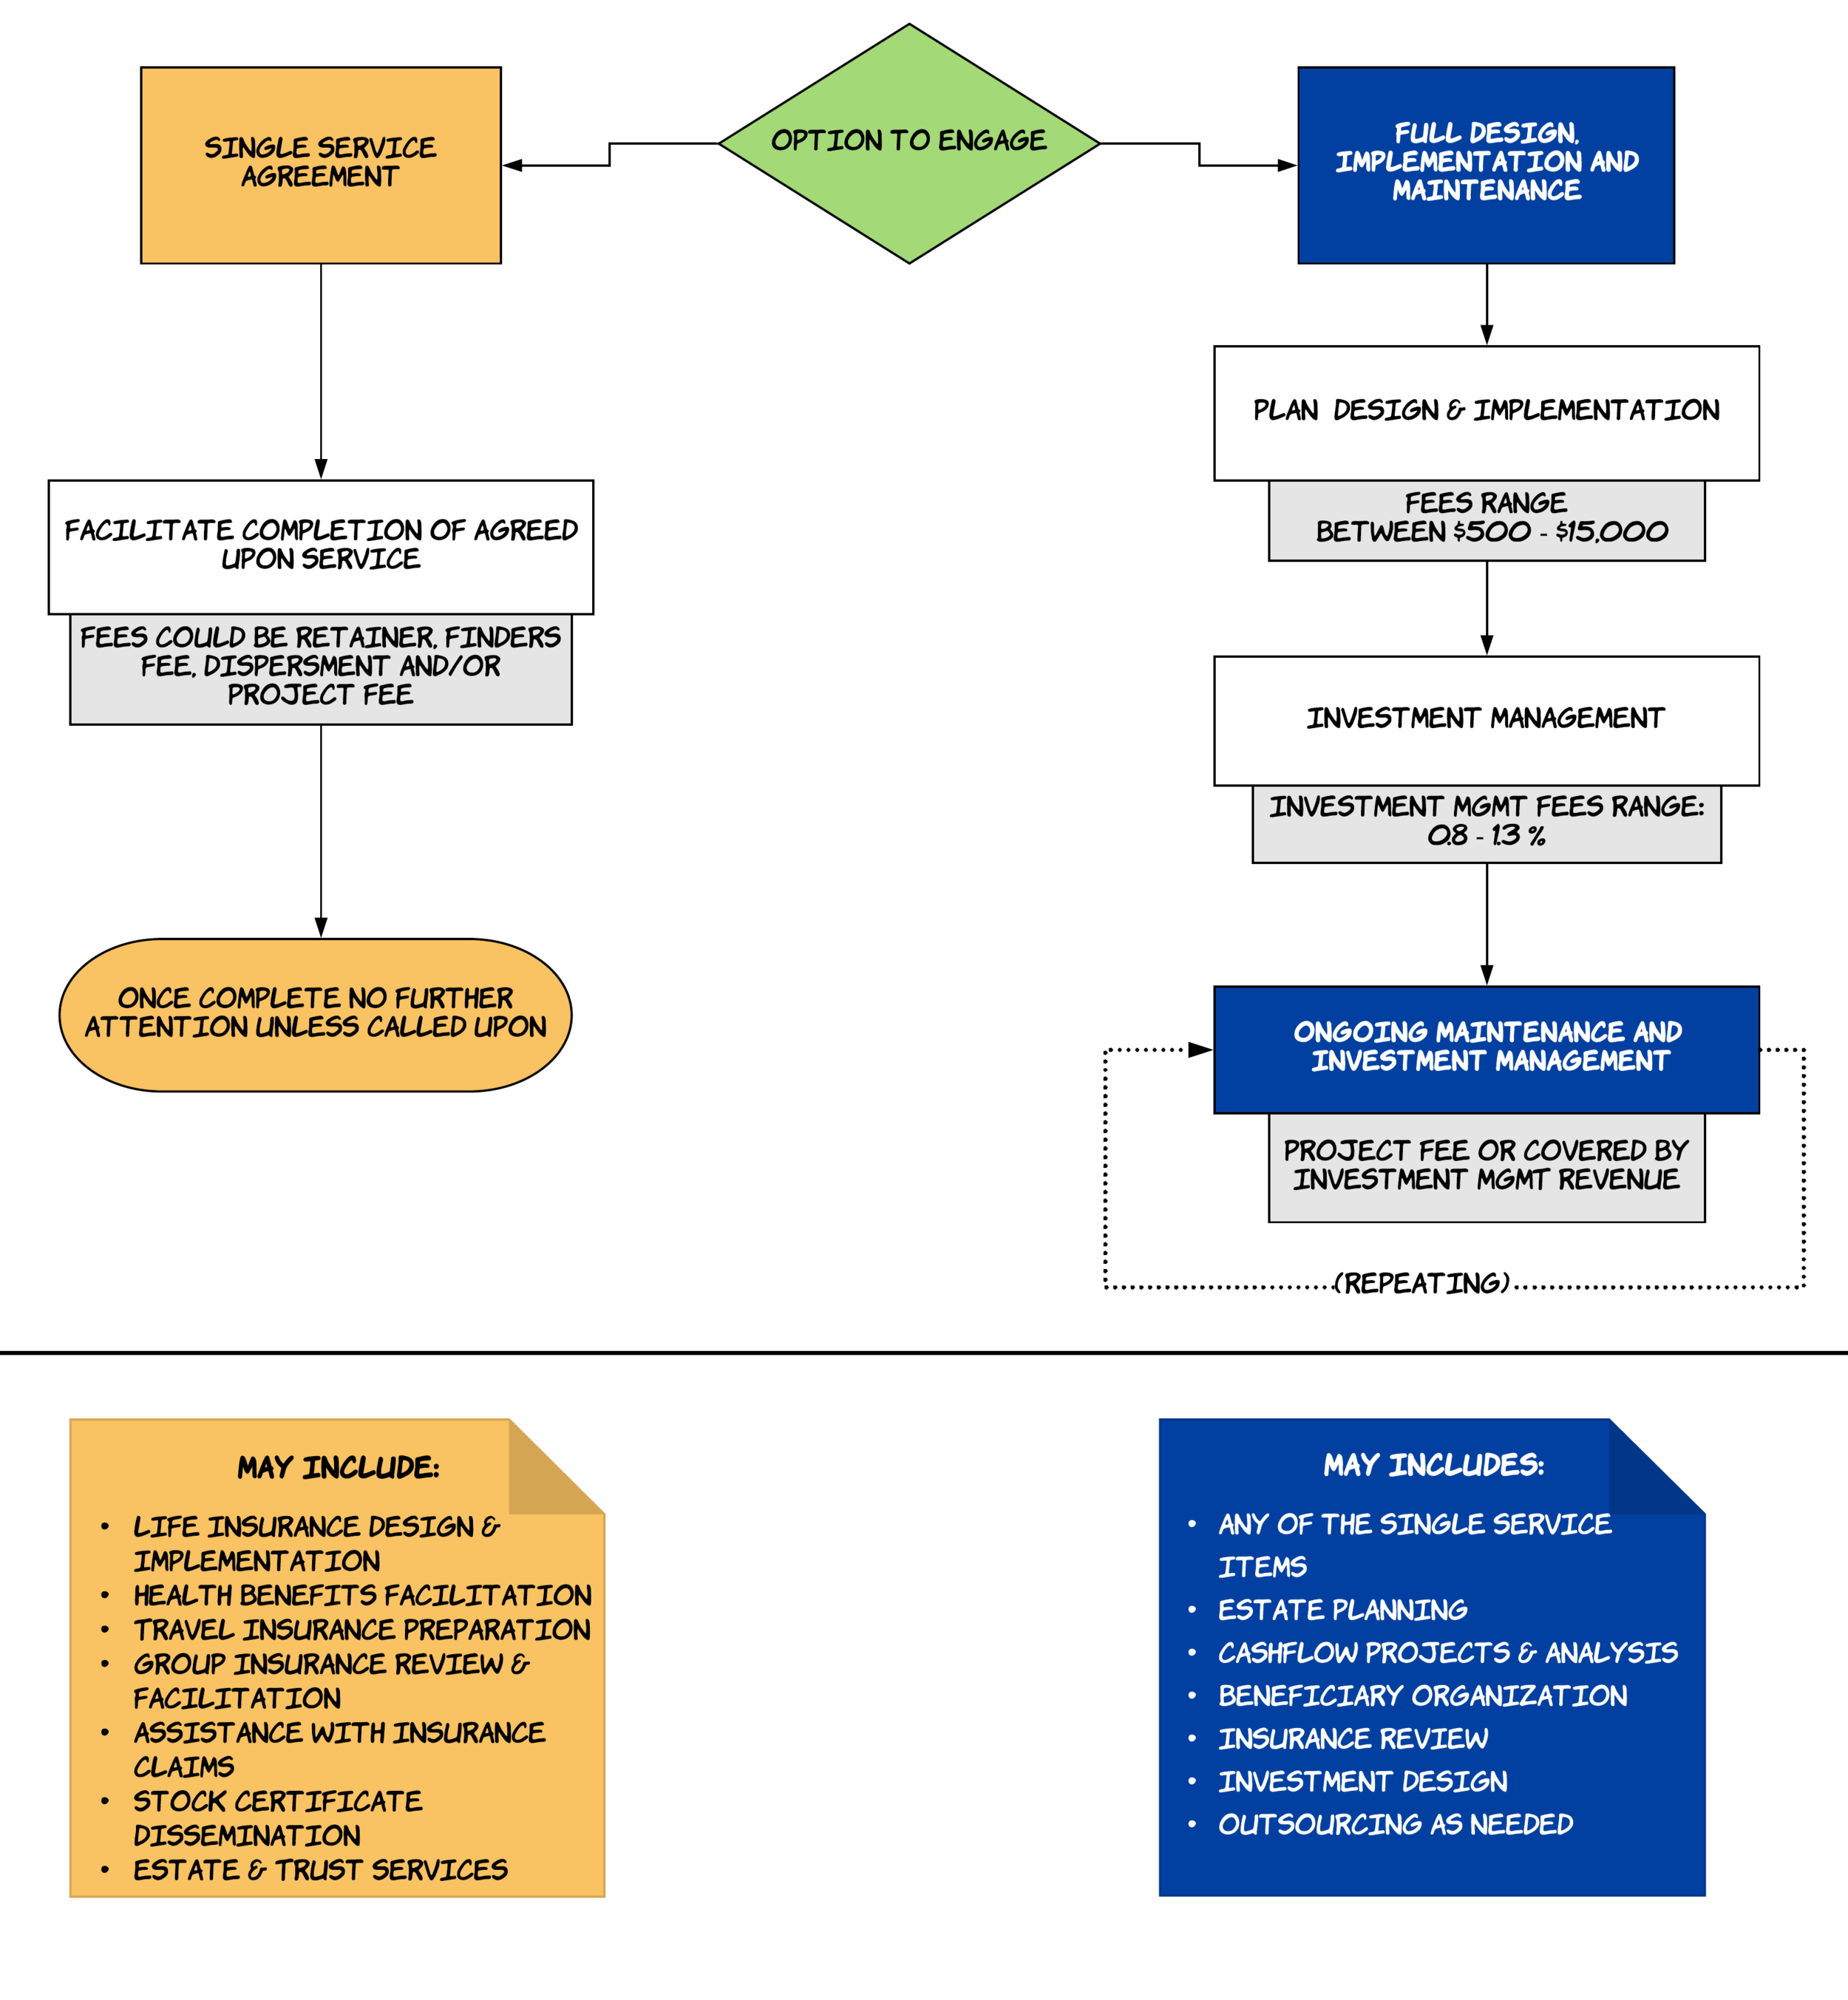 CRS Journeymap Overview - Page 1 (4).png